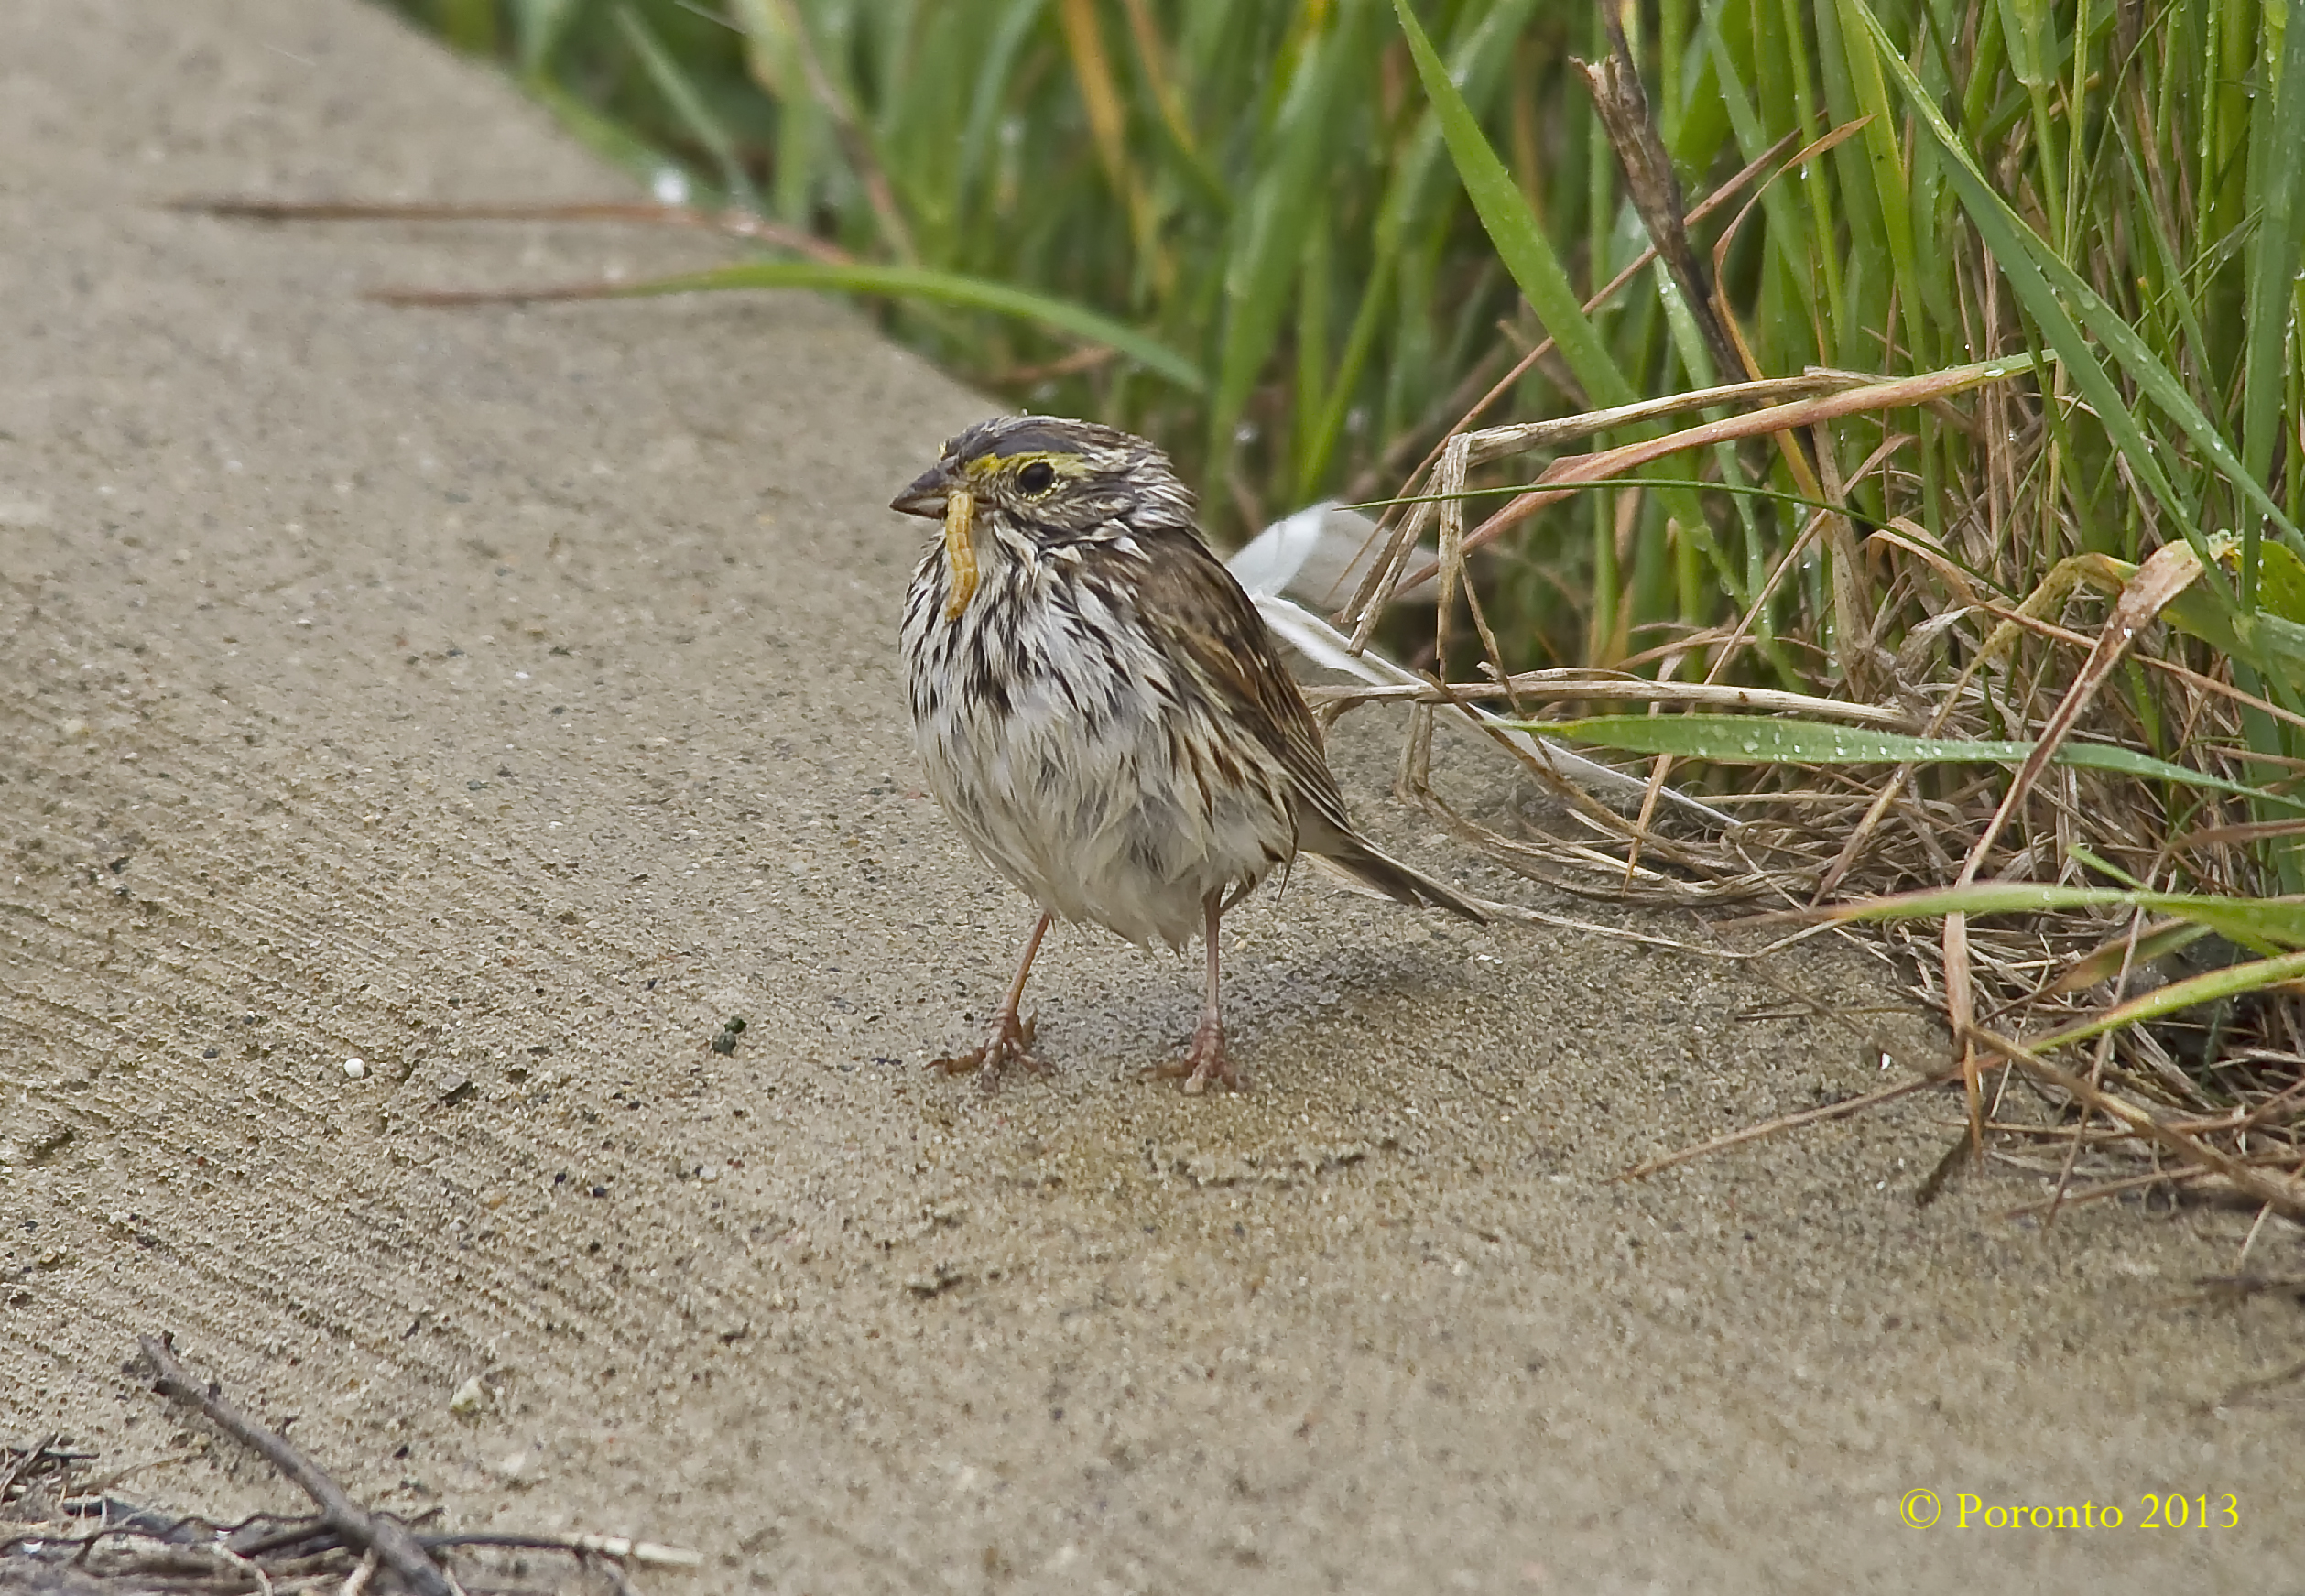 Savannah Sparrow with food for nestlings